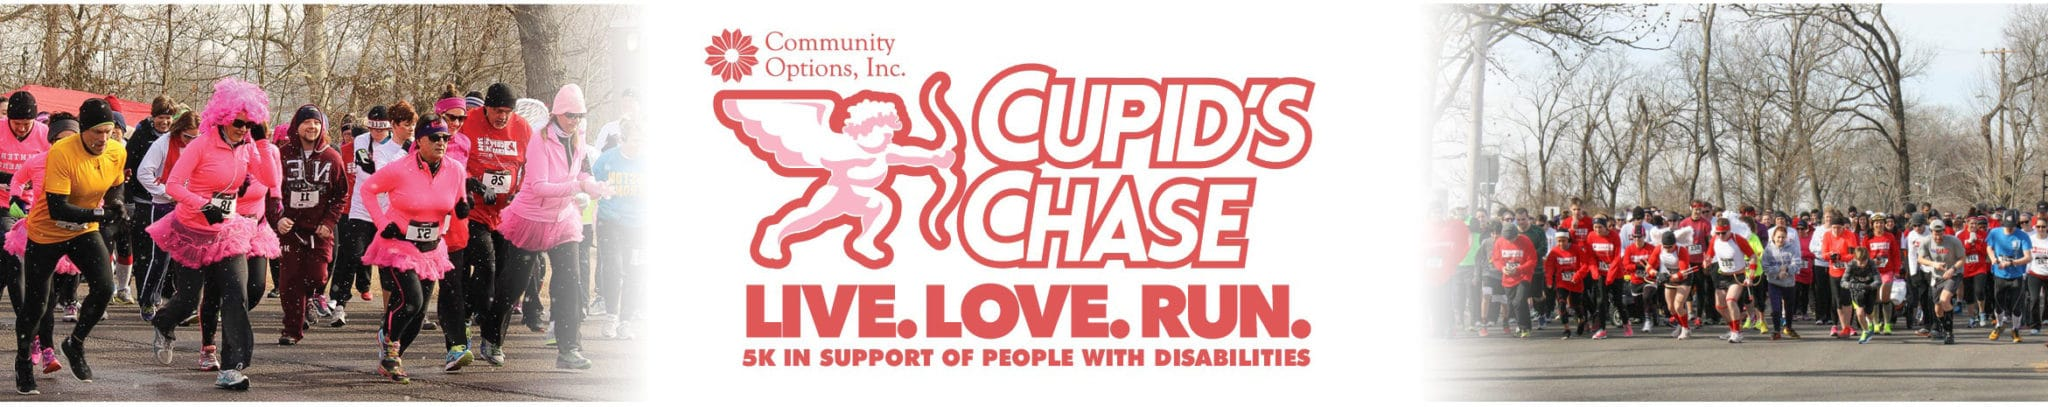 Cupid's Chase 5K – February 13, 2016